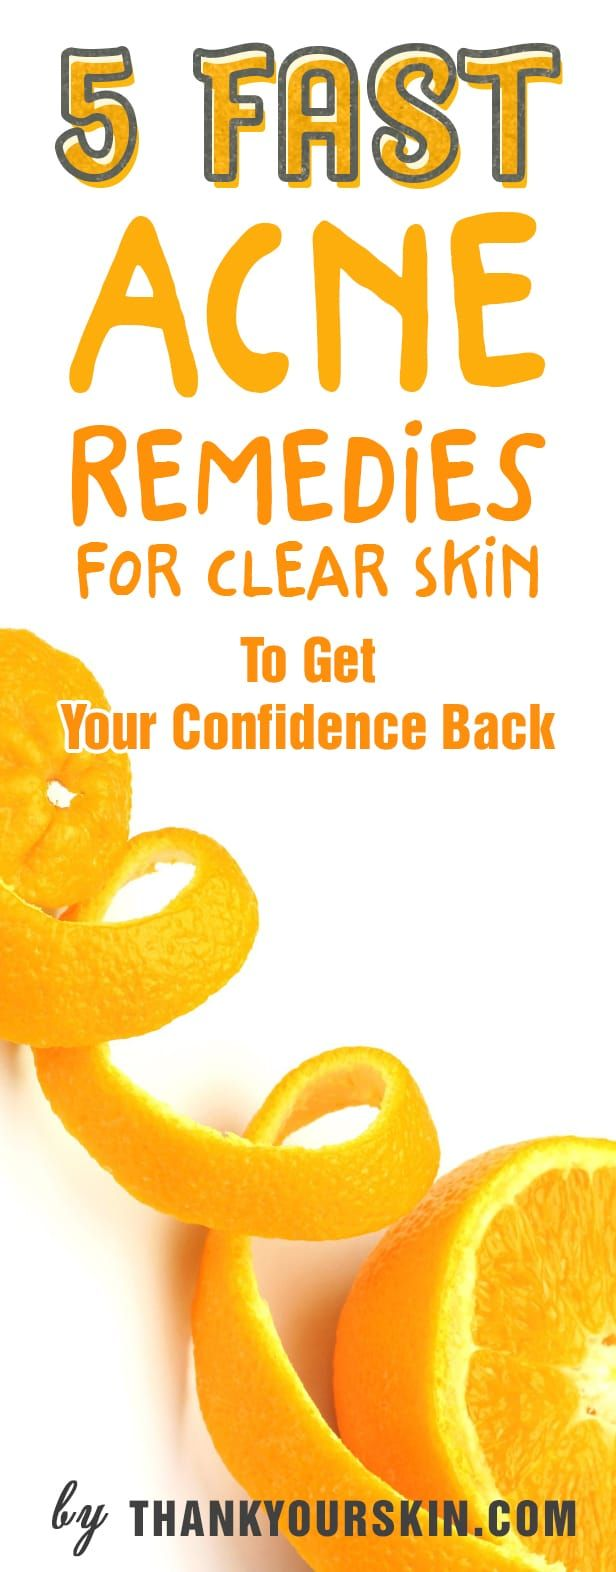 5 Fast Acne Remedies For Clear Skin To Get Your Confidence Back. How to get rid of pimples overnight with natural remedies that work!  https://www.thankyourskin.com/acne-remedies-fast-clear-skin/